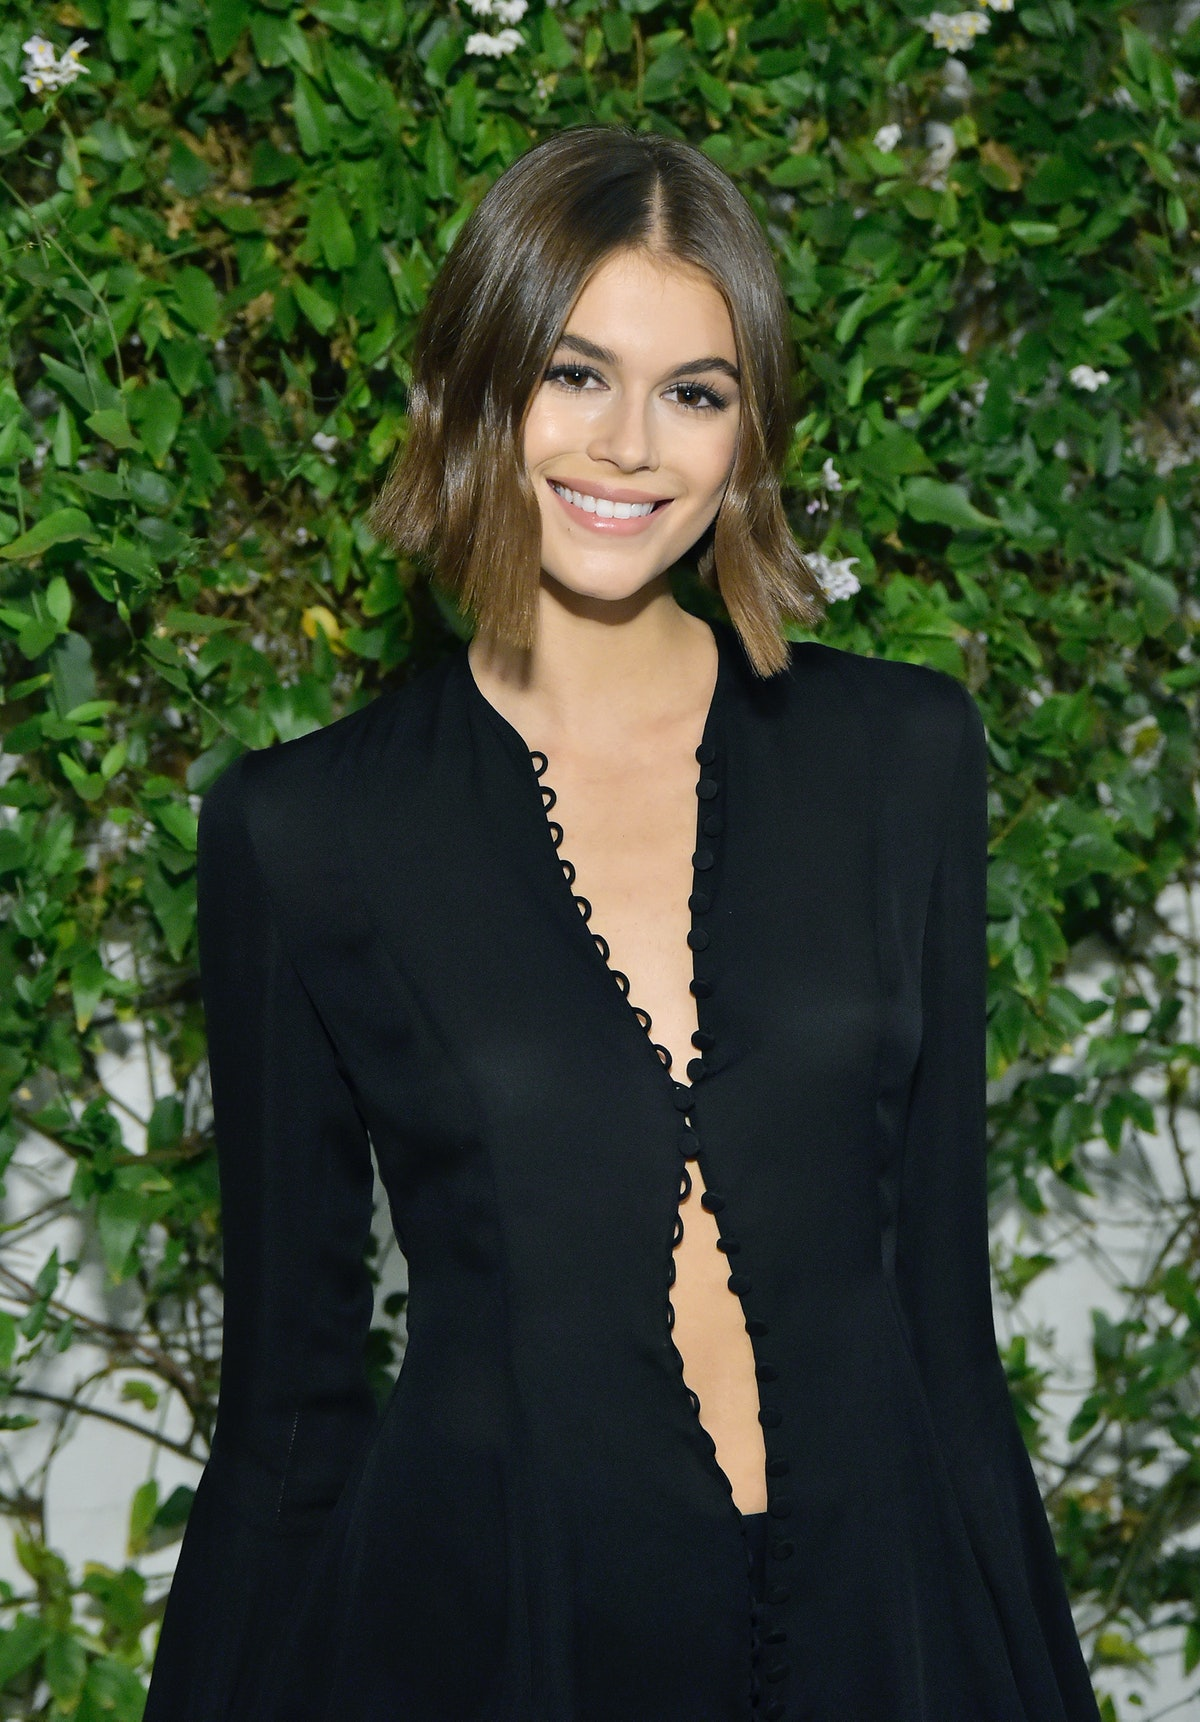 Kaia Gerber's parenting book Instagram has fans wondering if she's pregnant.